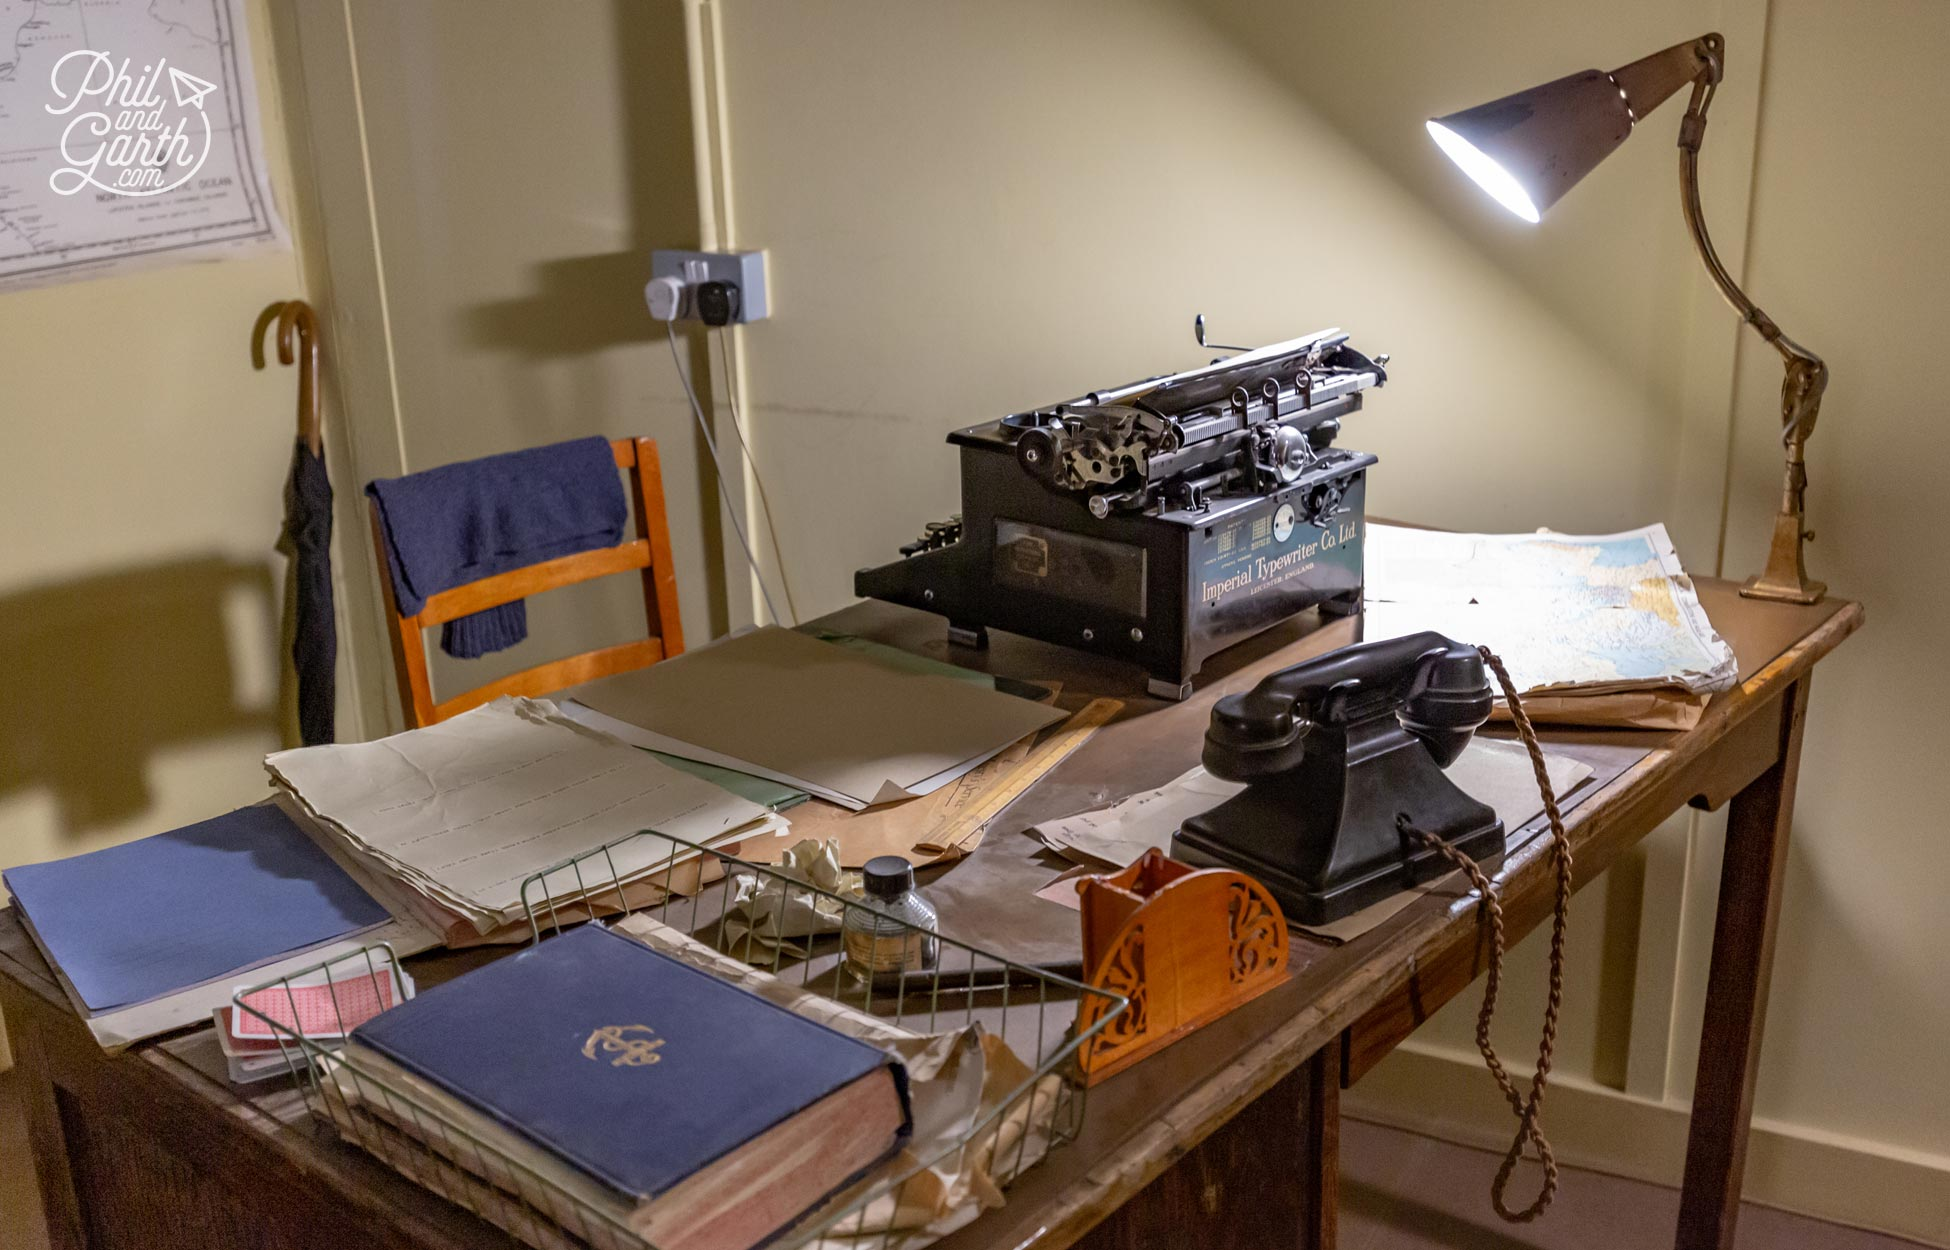 Alan Turing's desk in his office